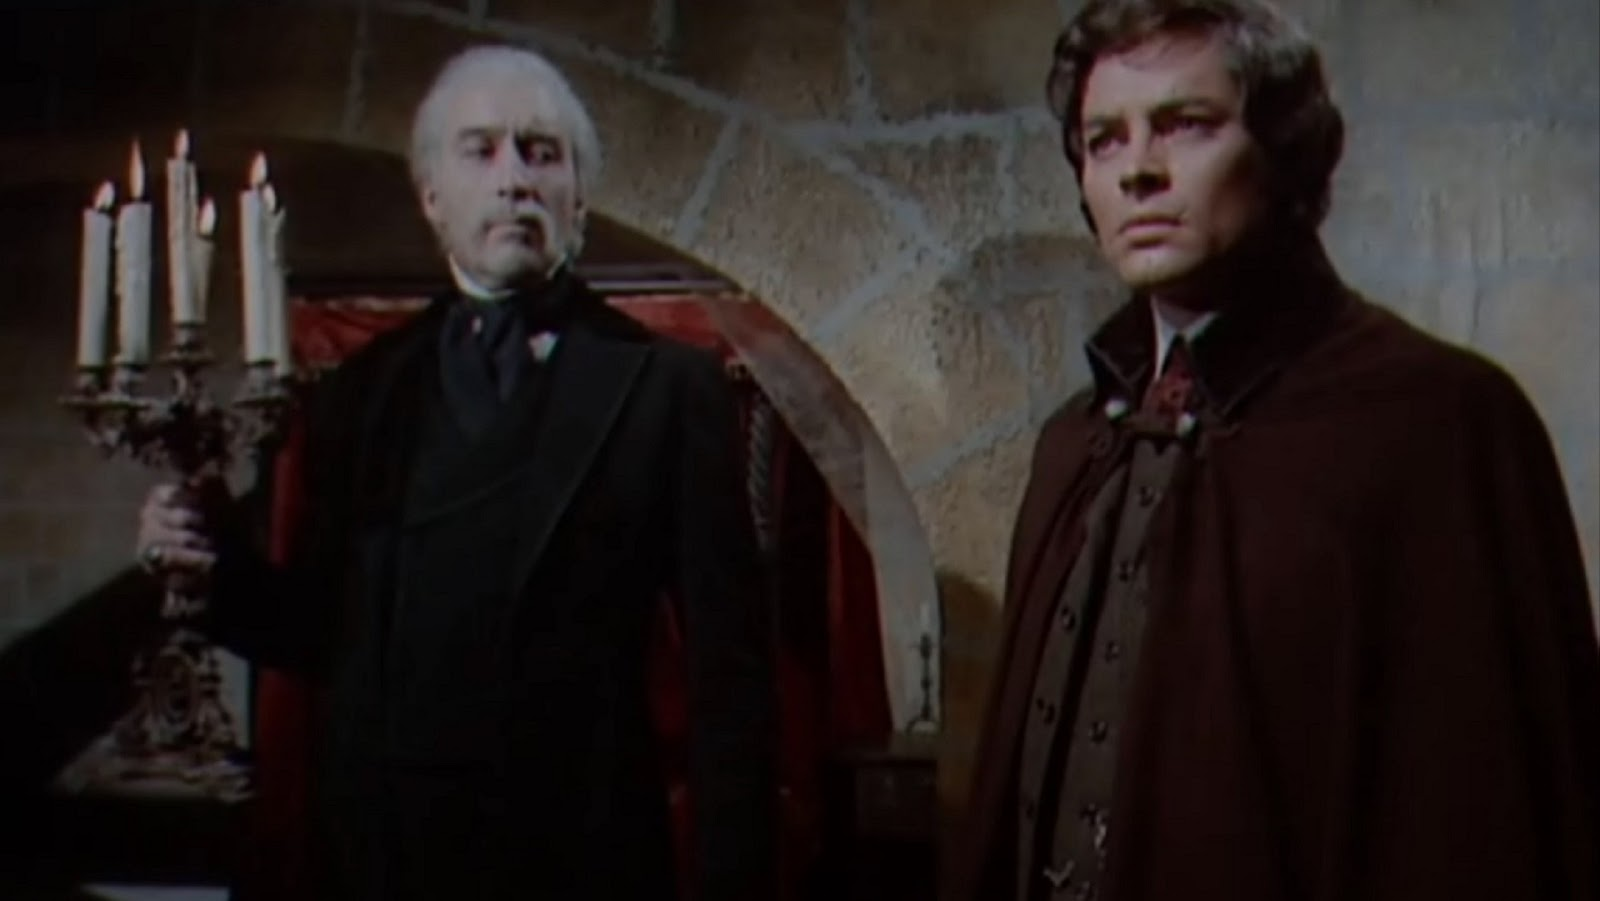 the psychotronic kinematograph count dracula nachts wenn count dracula nachts wenn dracula erwacht 1970 jess franco